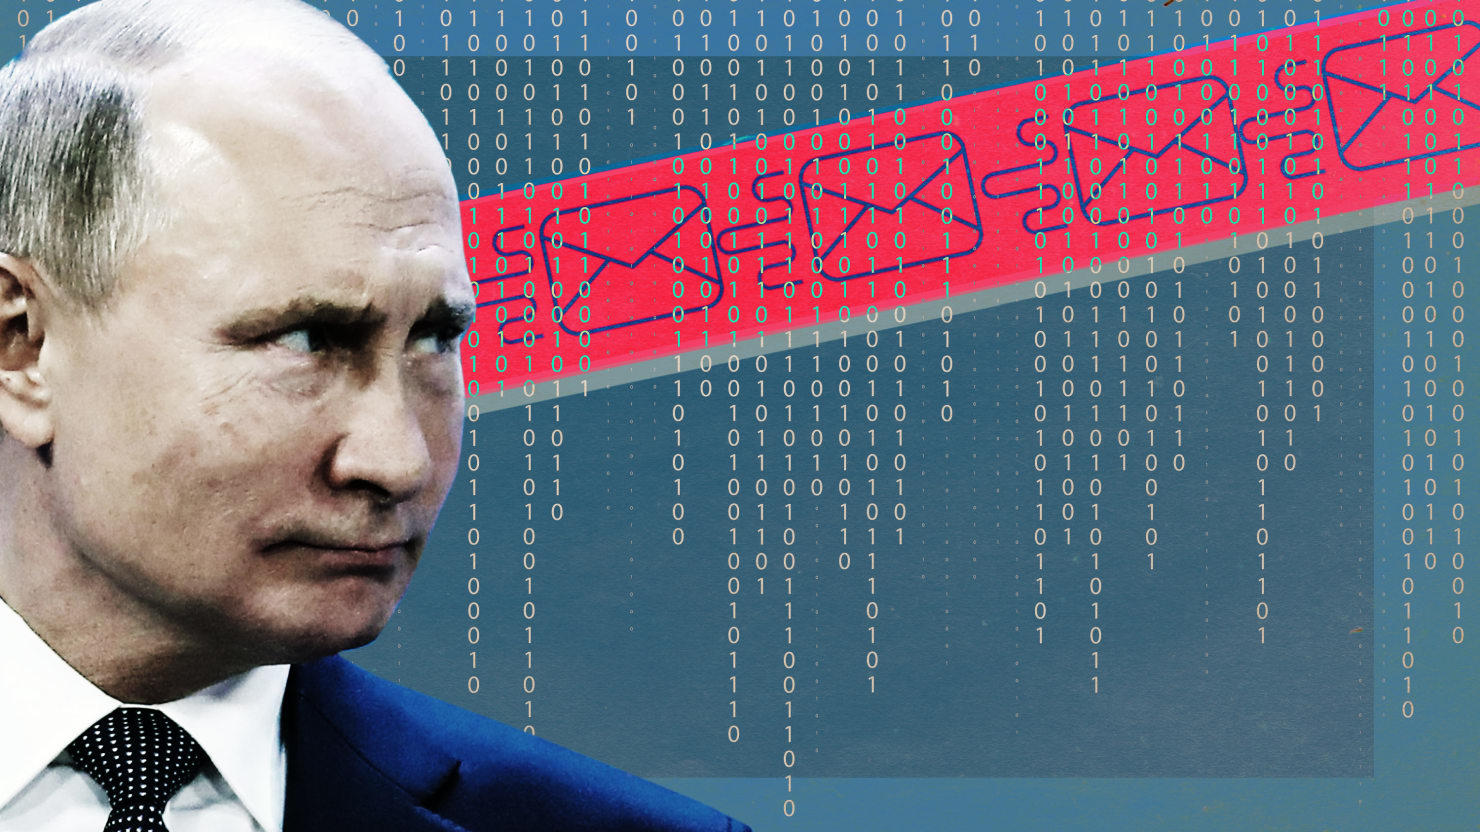 This Time It's Russia's Emails Getting Leaked